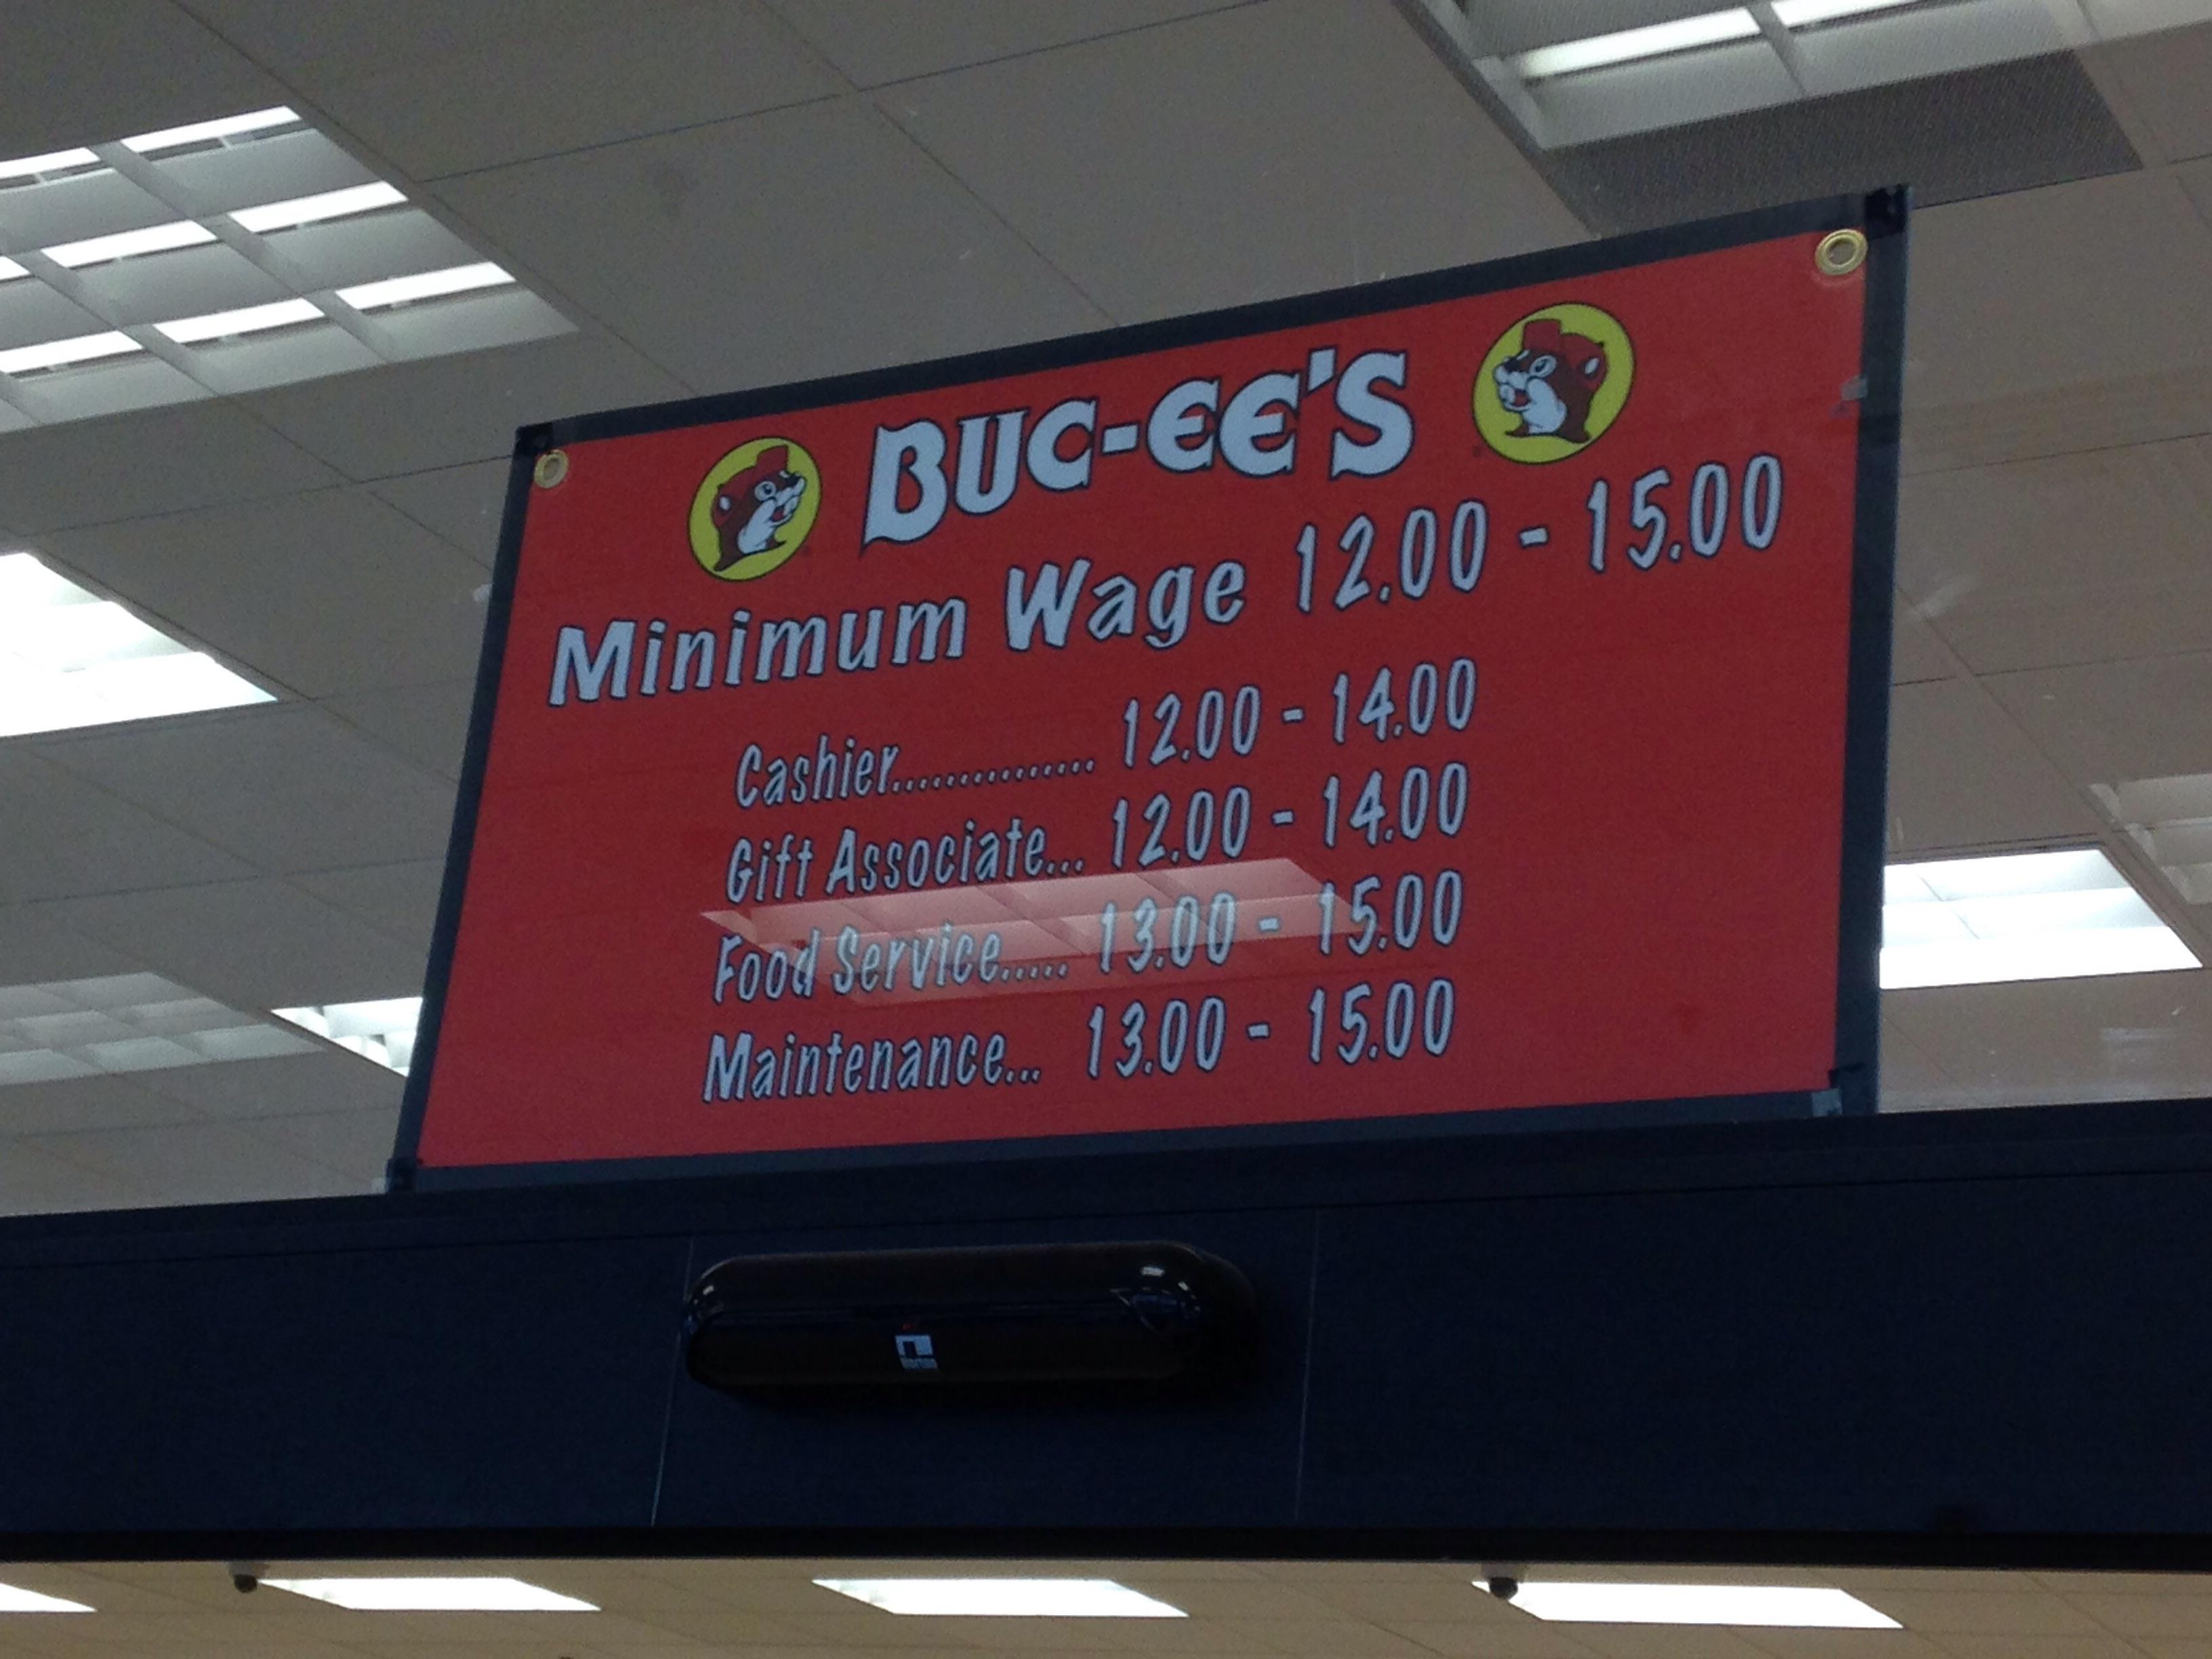 buc-ees-wages